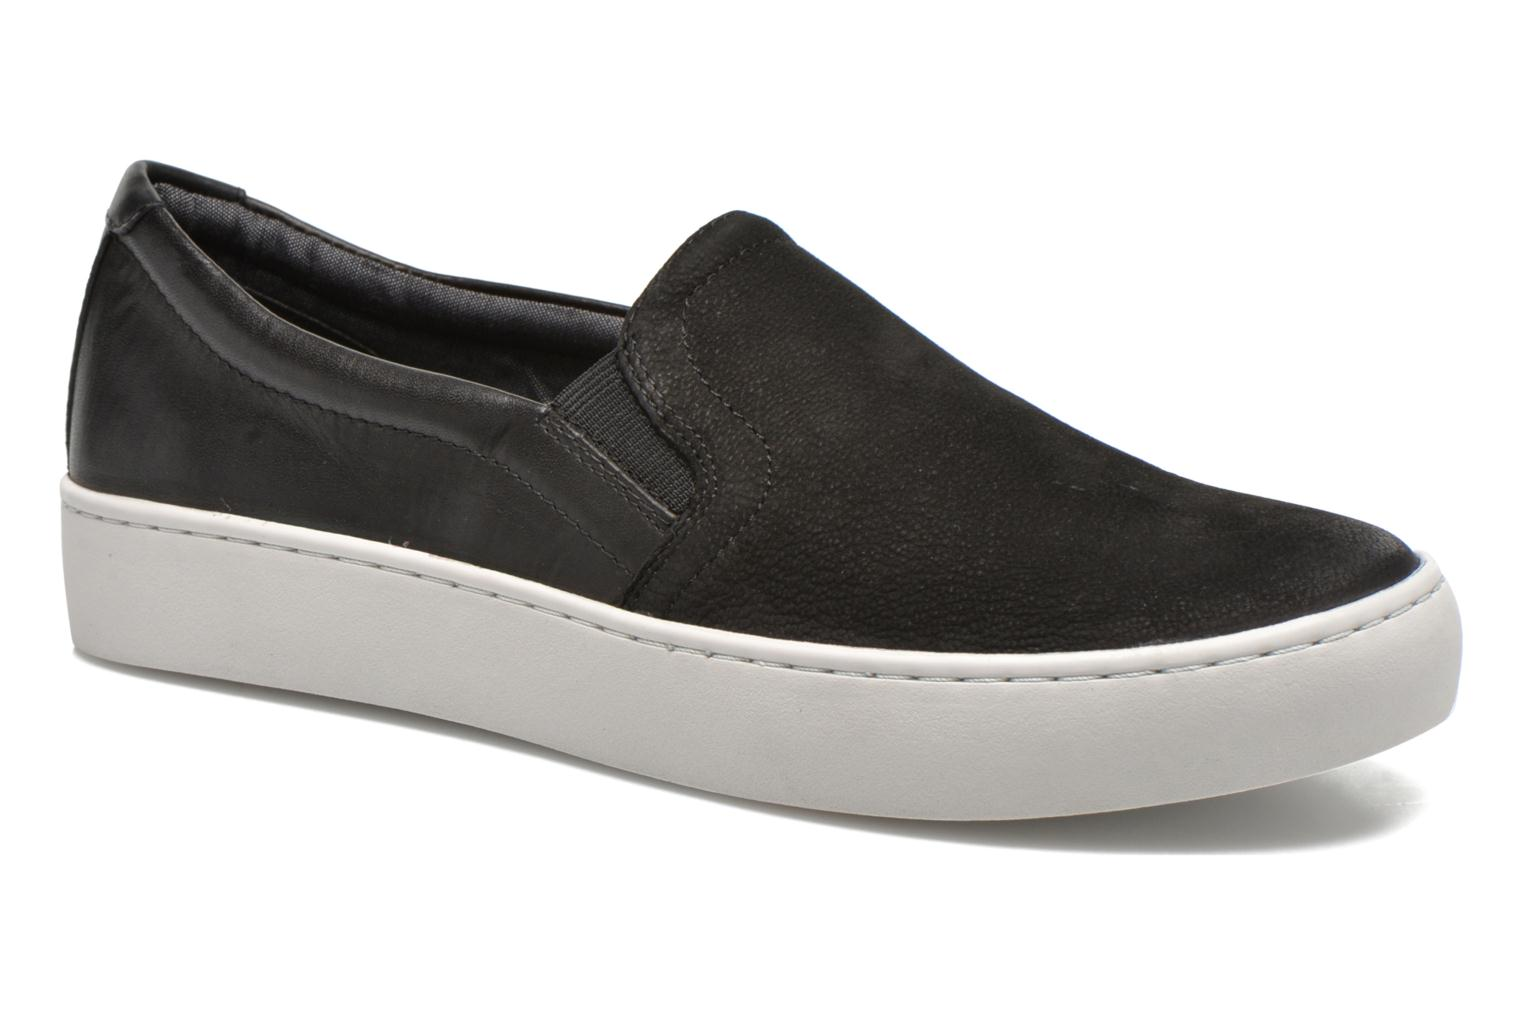 ZOE SLIP-ON 4326-350 par Vagabond Shoemakers